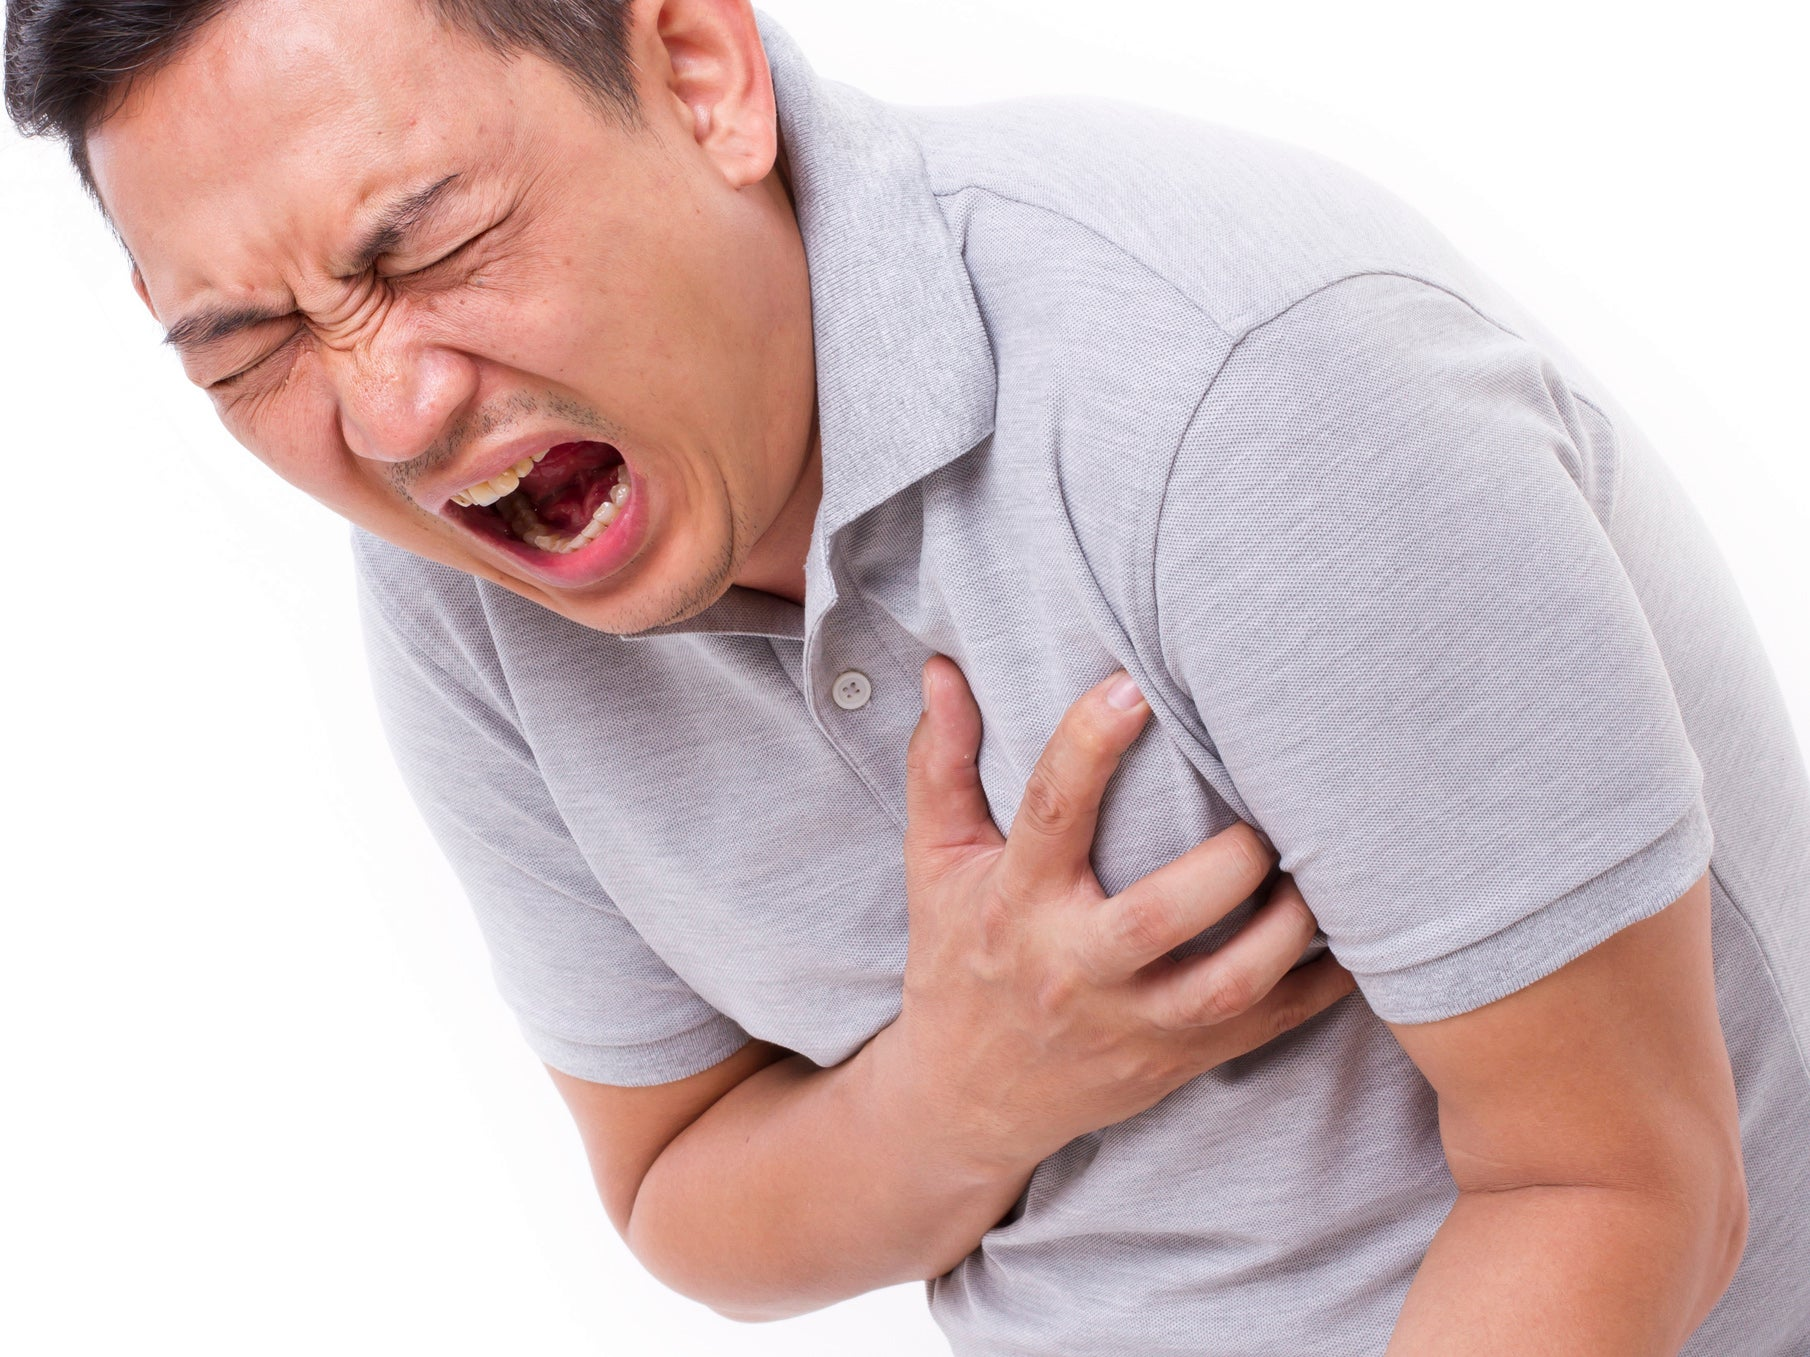 exercising when angry could 'triple risk of having a heart attack, Skeleton